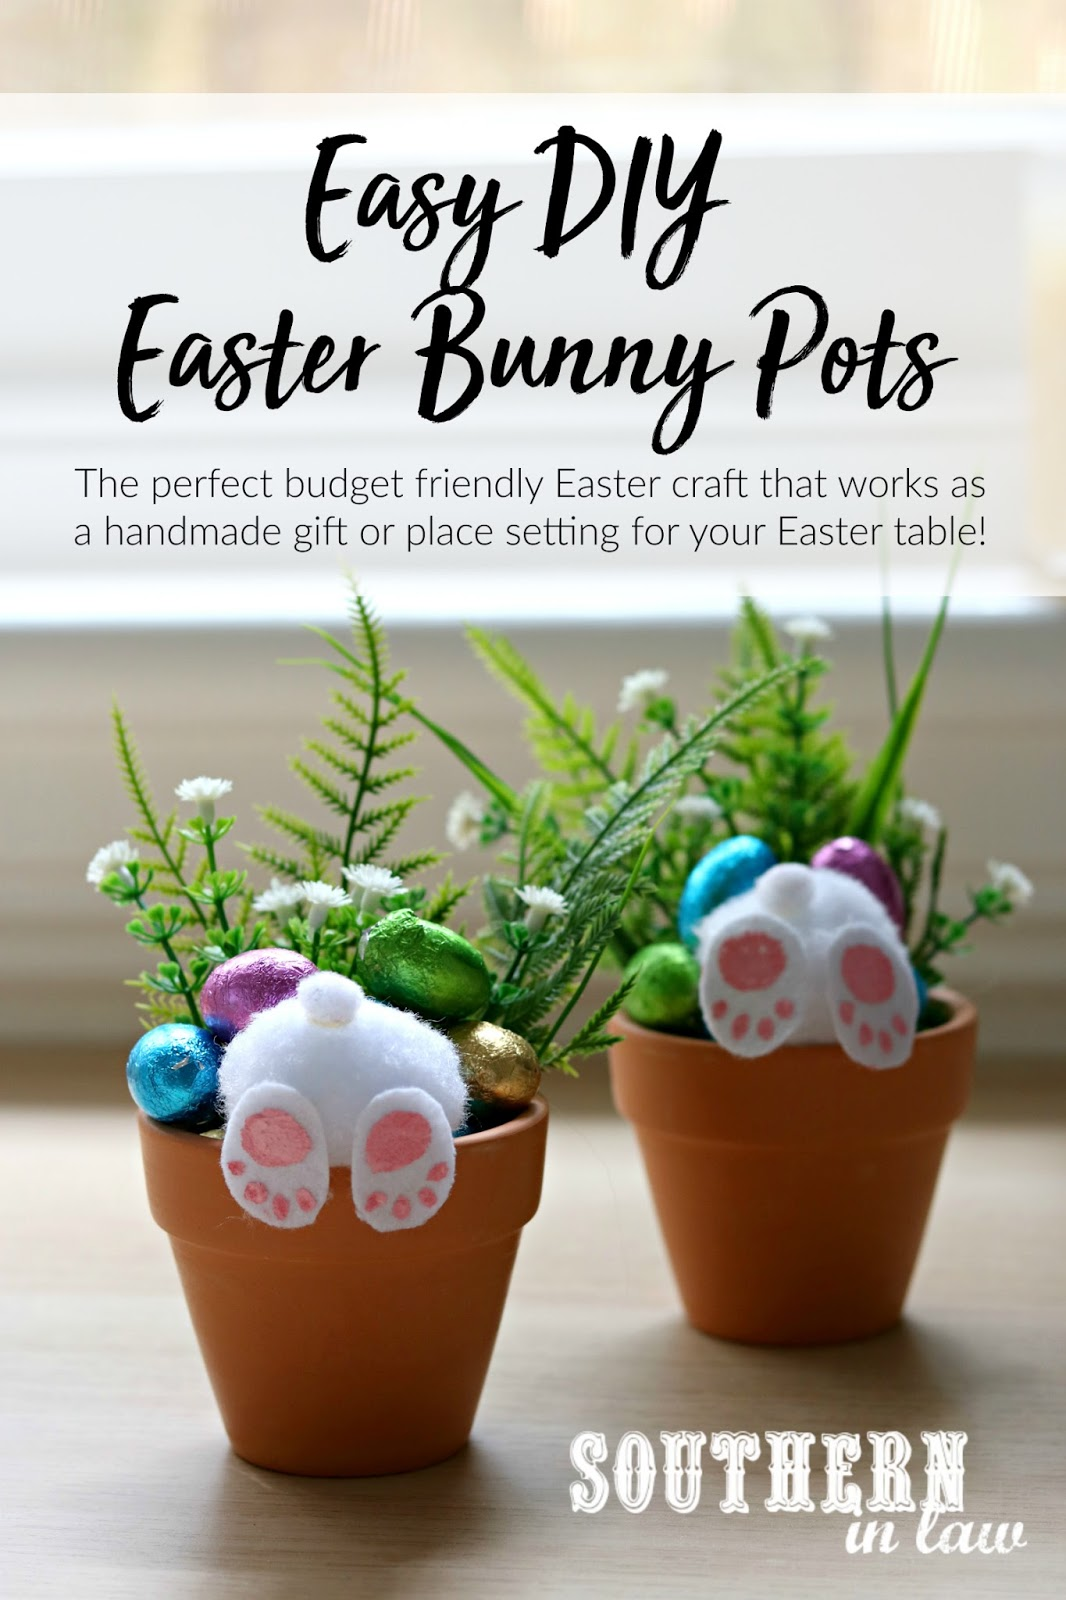 Southern in law how to make your own curious easter bunny pots an easy diy curious easter bunny pots handmade easter gift ideas place settings placecards negle Image collections